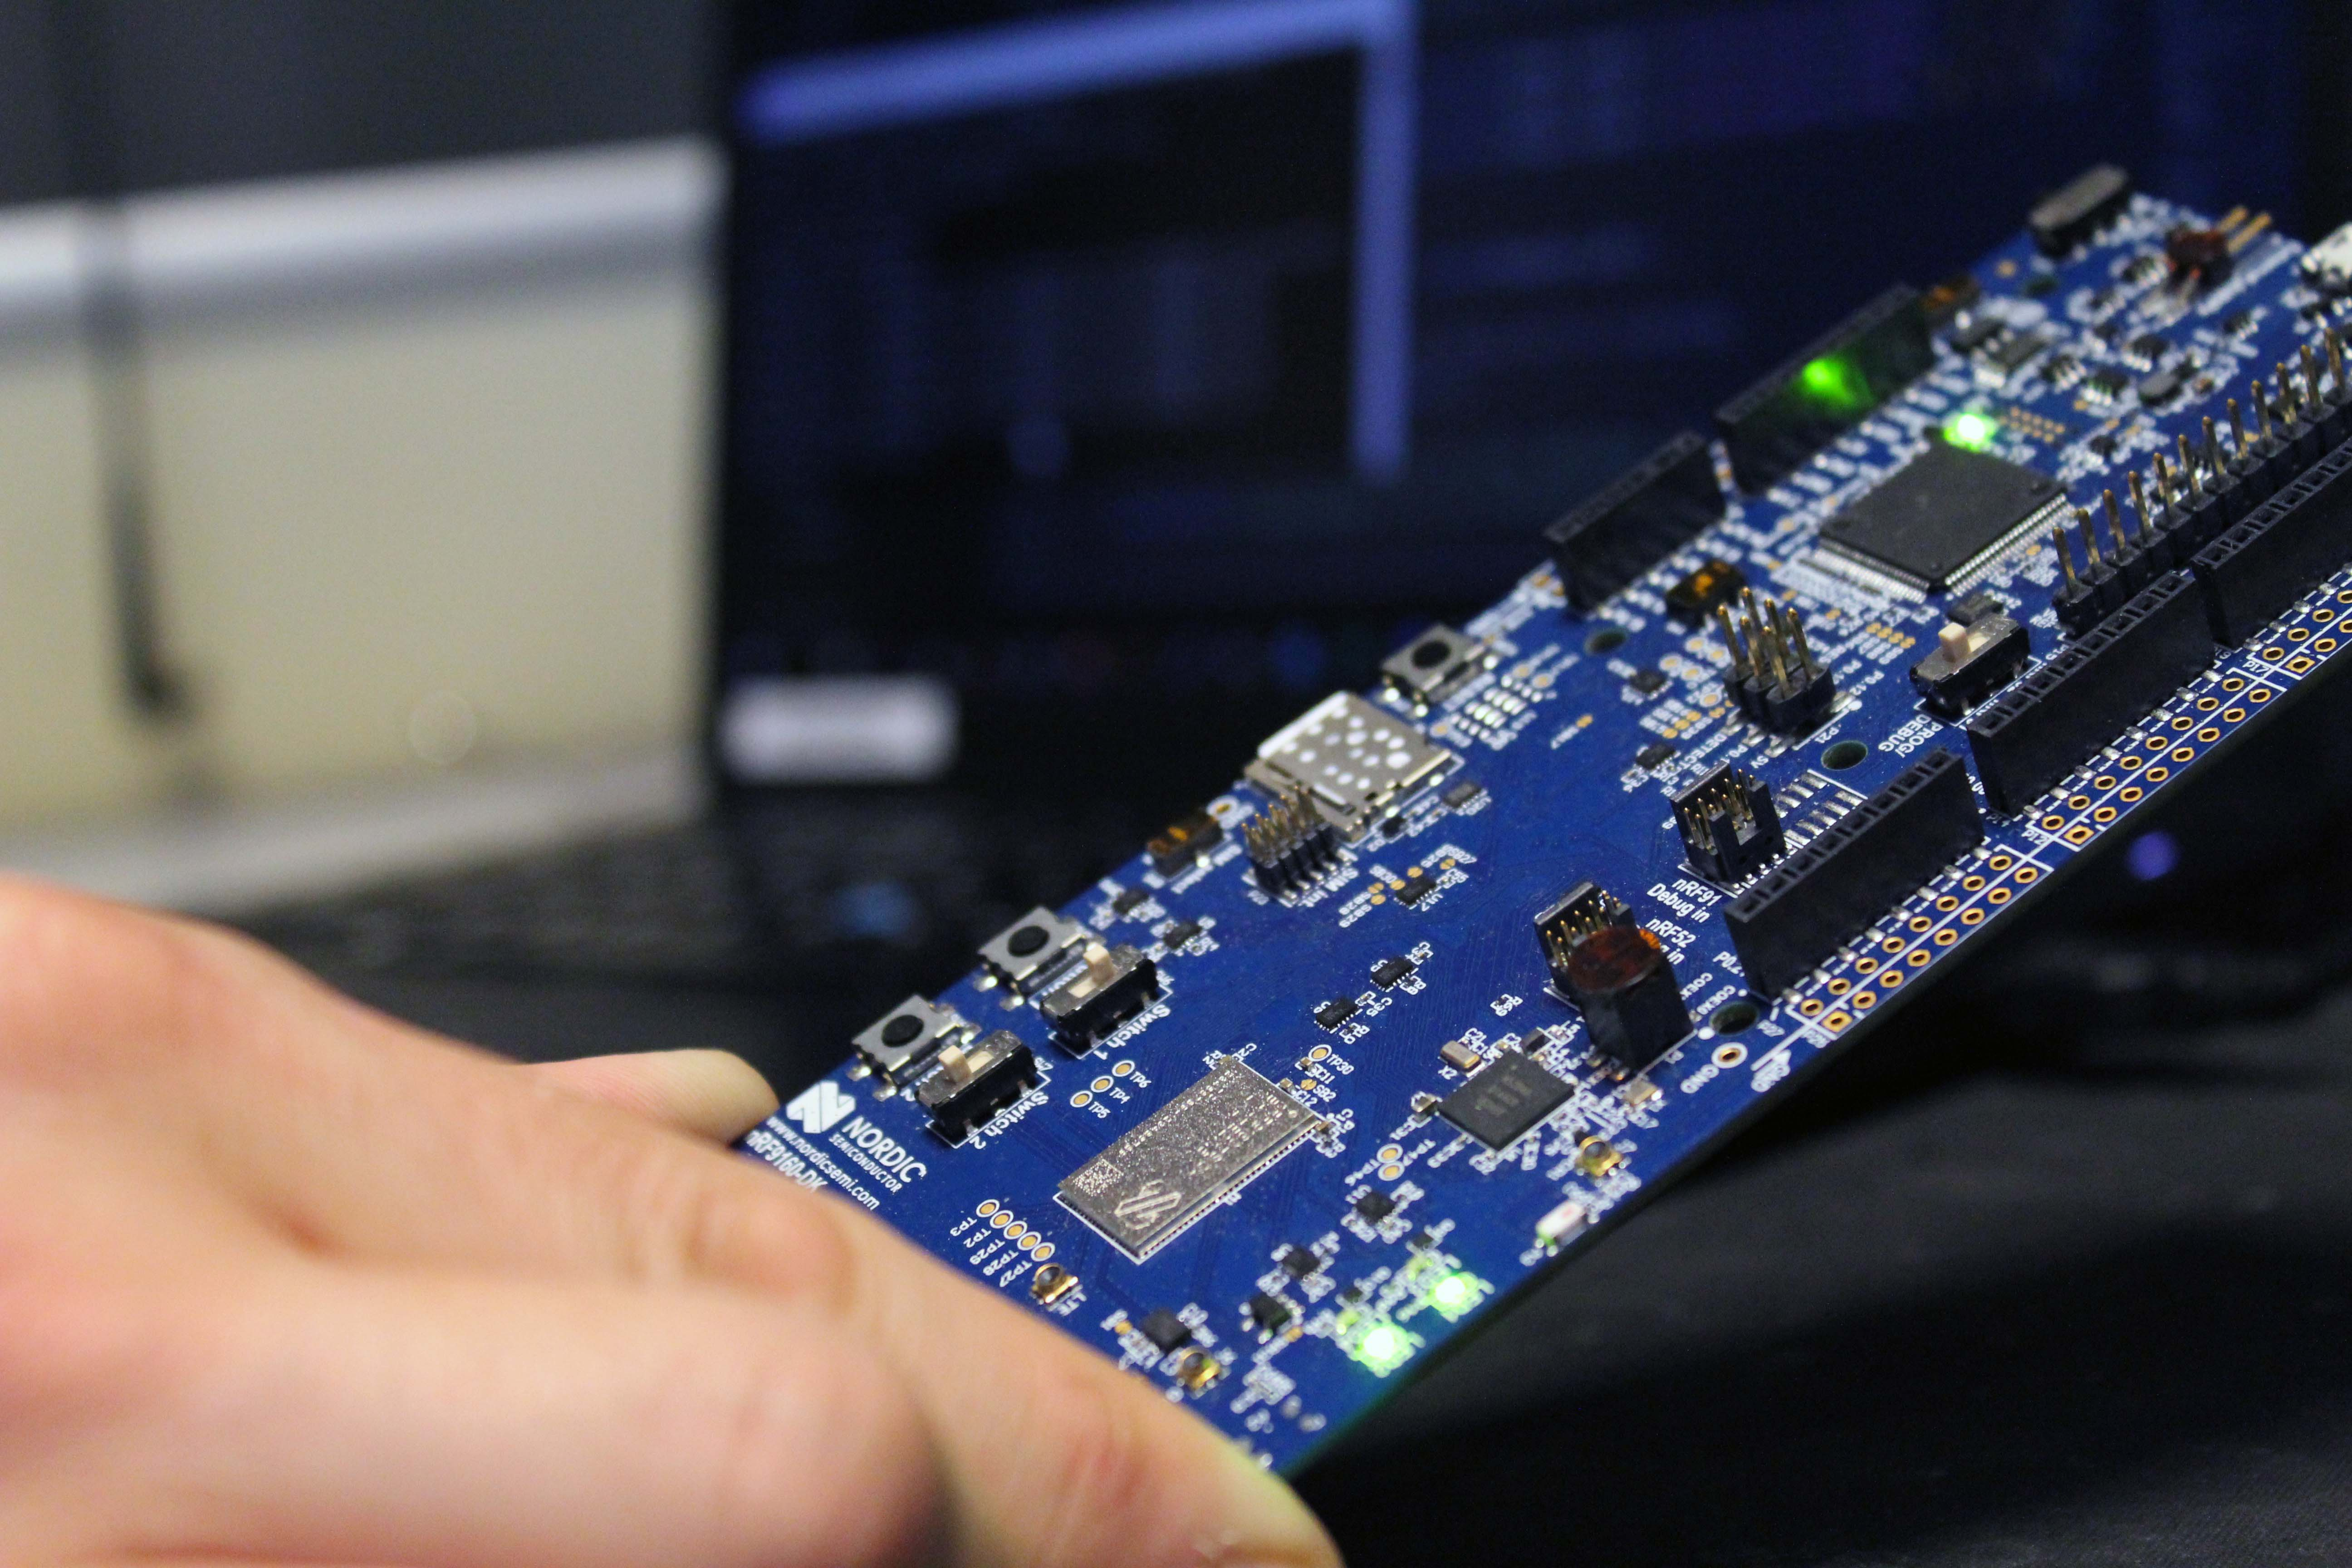 42 Technology aims to accelerate secure, low cost cellular IoT